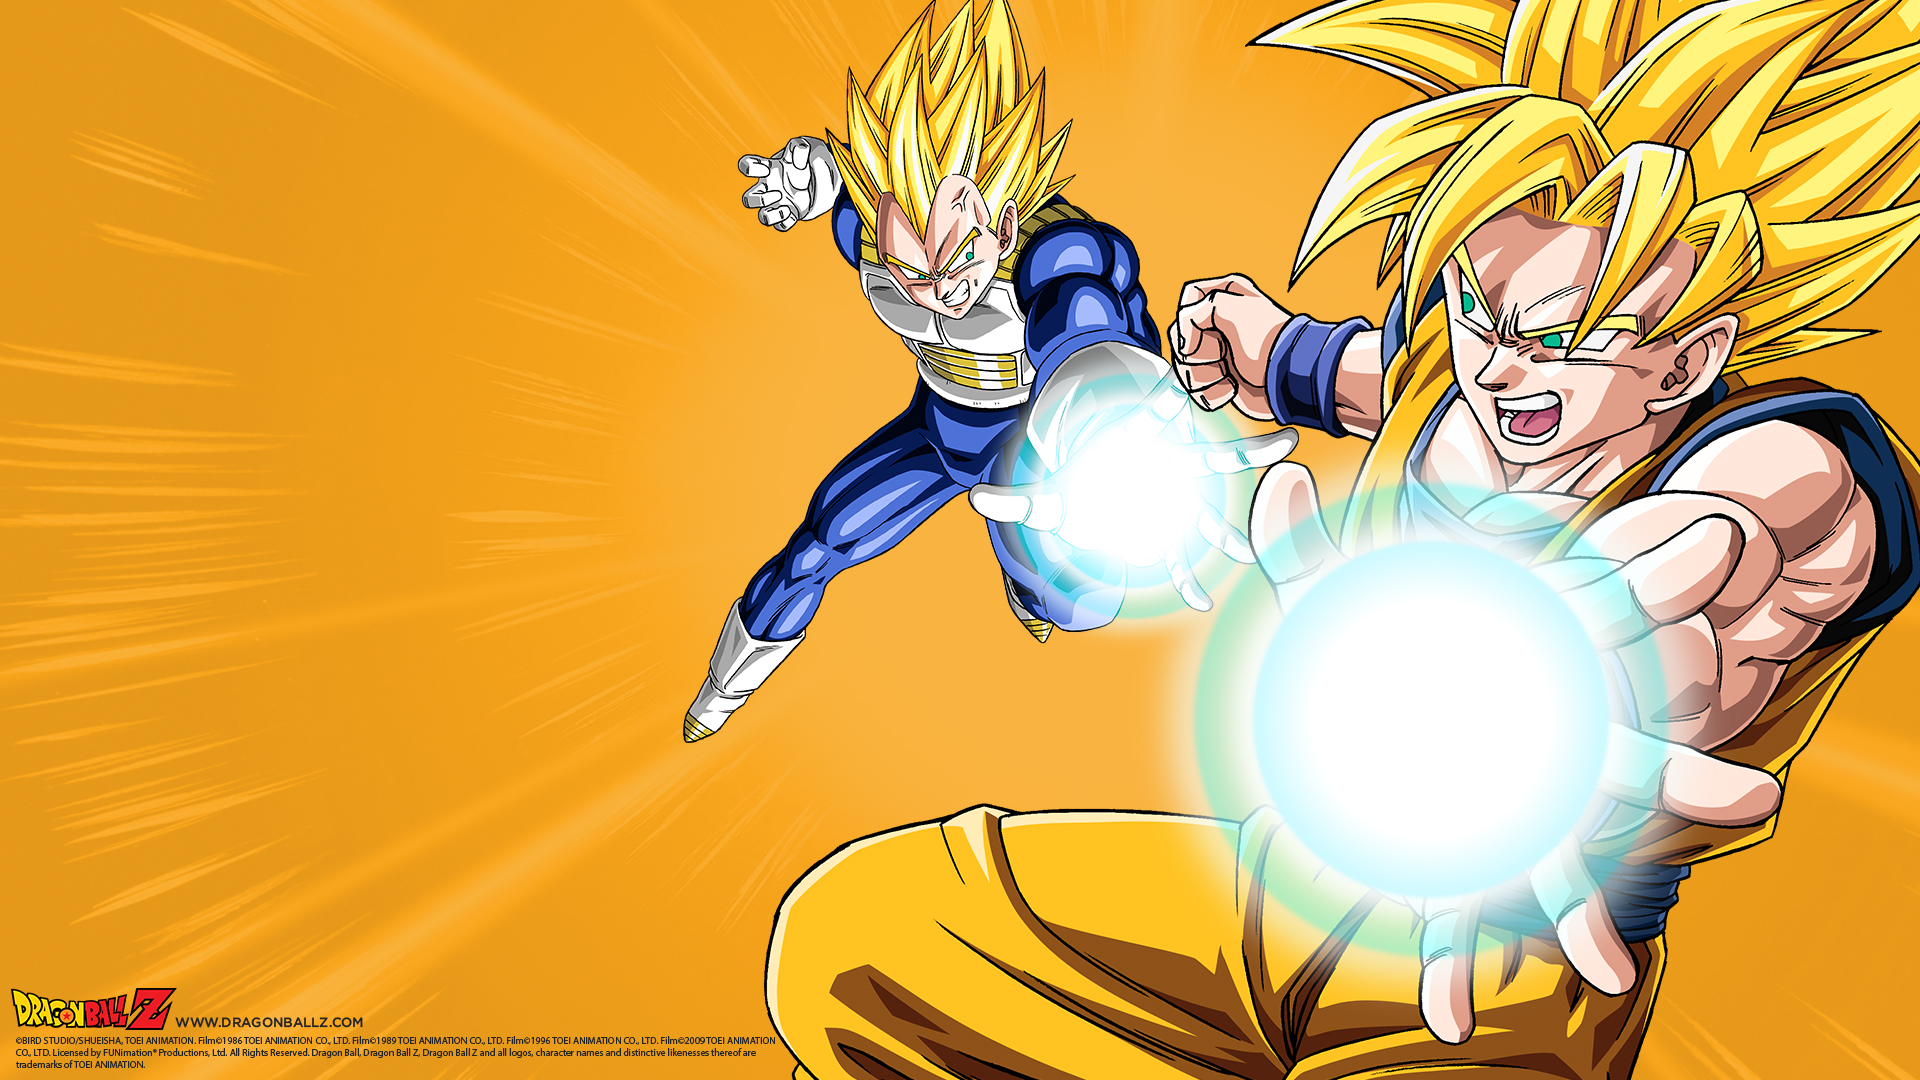 Dragon ball z wallpaper free background pc 6070 wallpaper dragon ball z wallpaper free background pc voltagebd Image collections